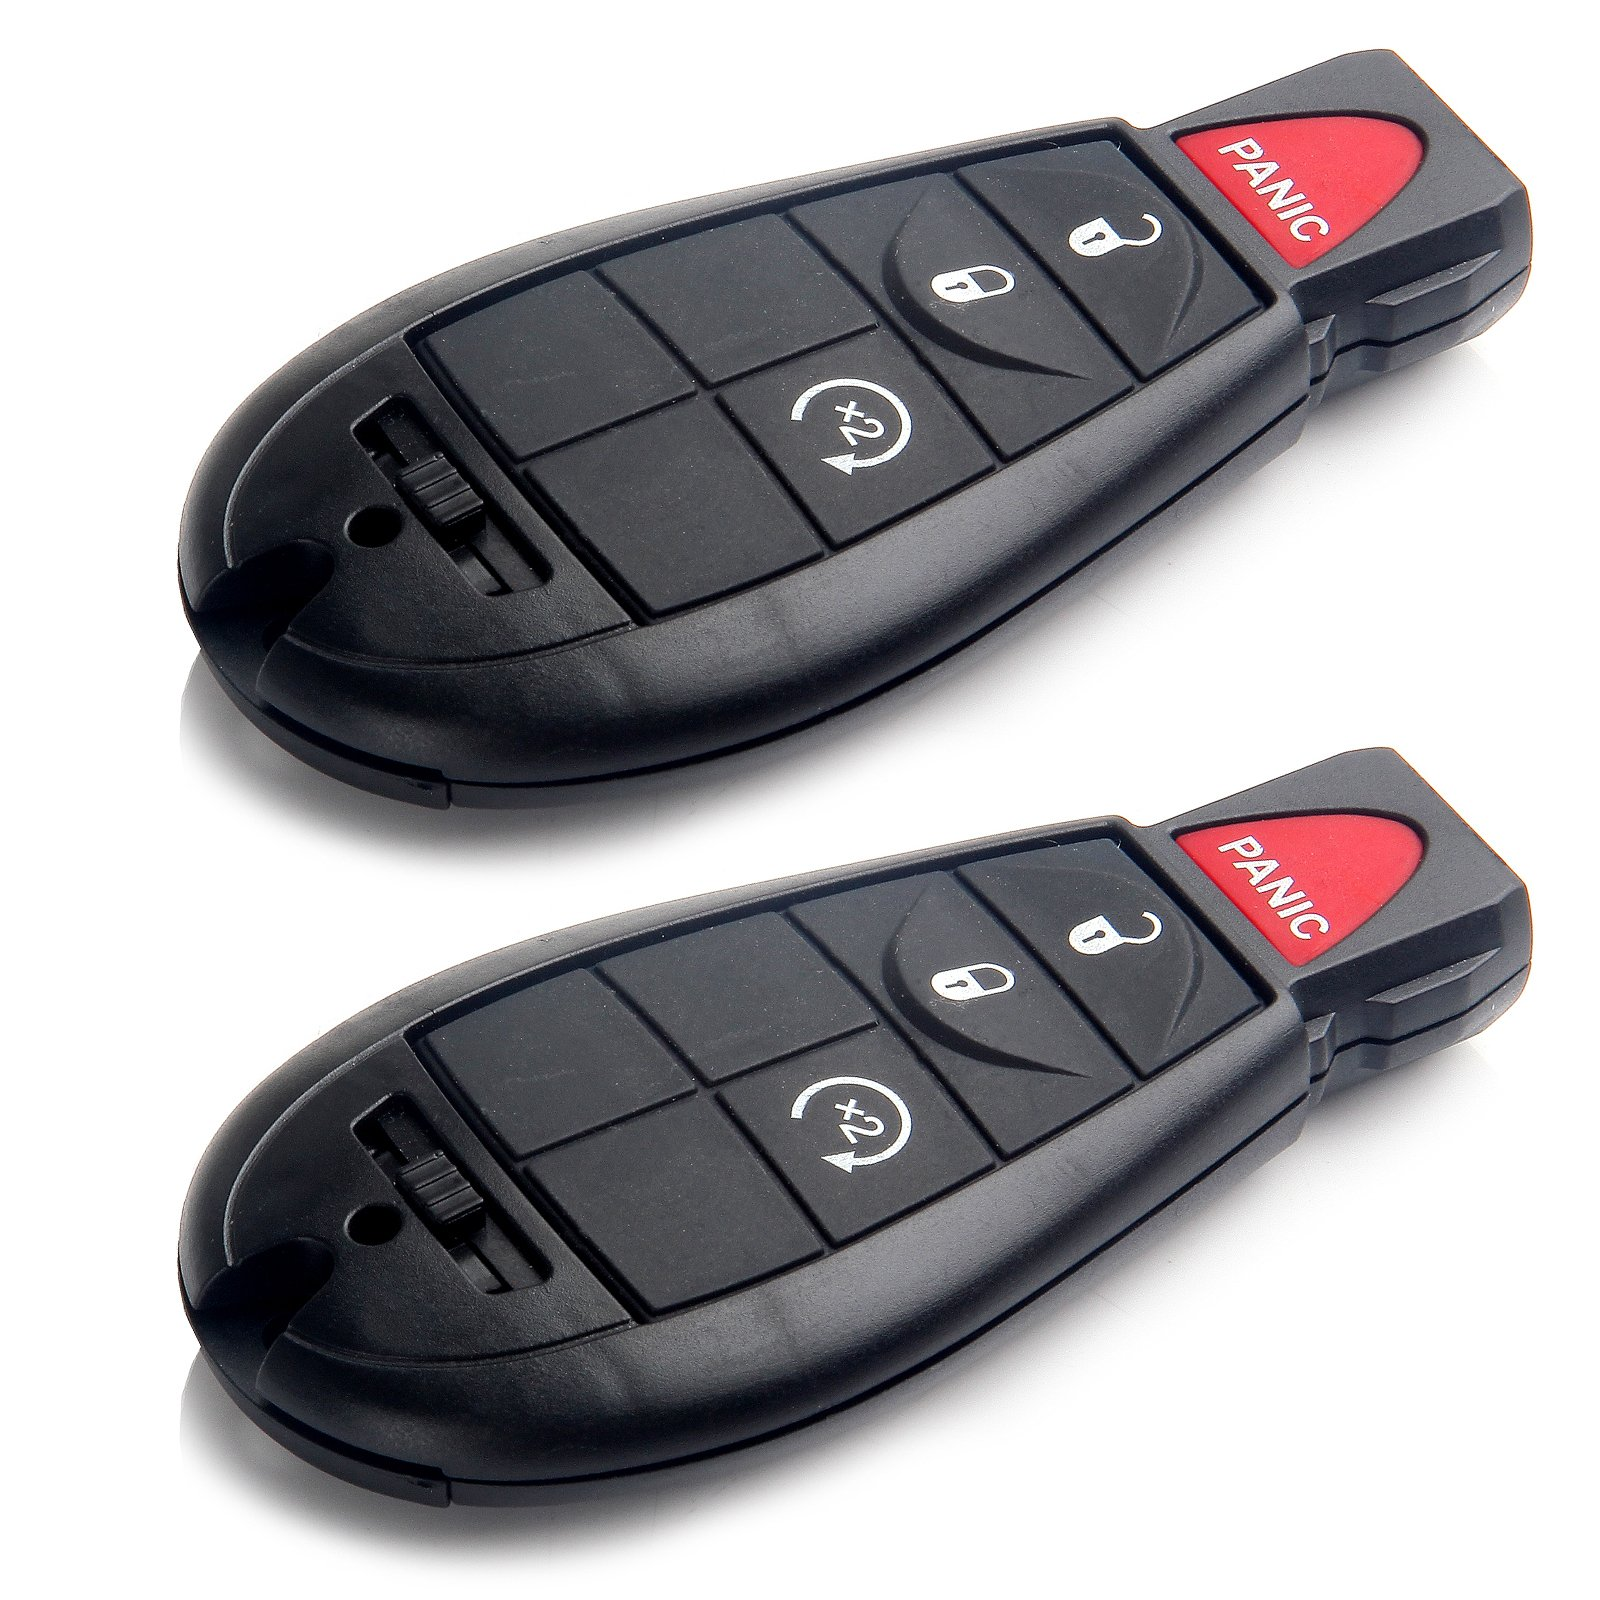 SCITOO 2X 4 Button Uncut Keyless Entry Option Replacement fit for Chrysler 300 Town & Country Dodge ChallengerDurango Grand Caravan Journey Jeep Commander Volkswagen Routan M3N5WY783X, IYZ-C01C